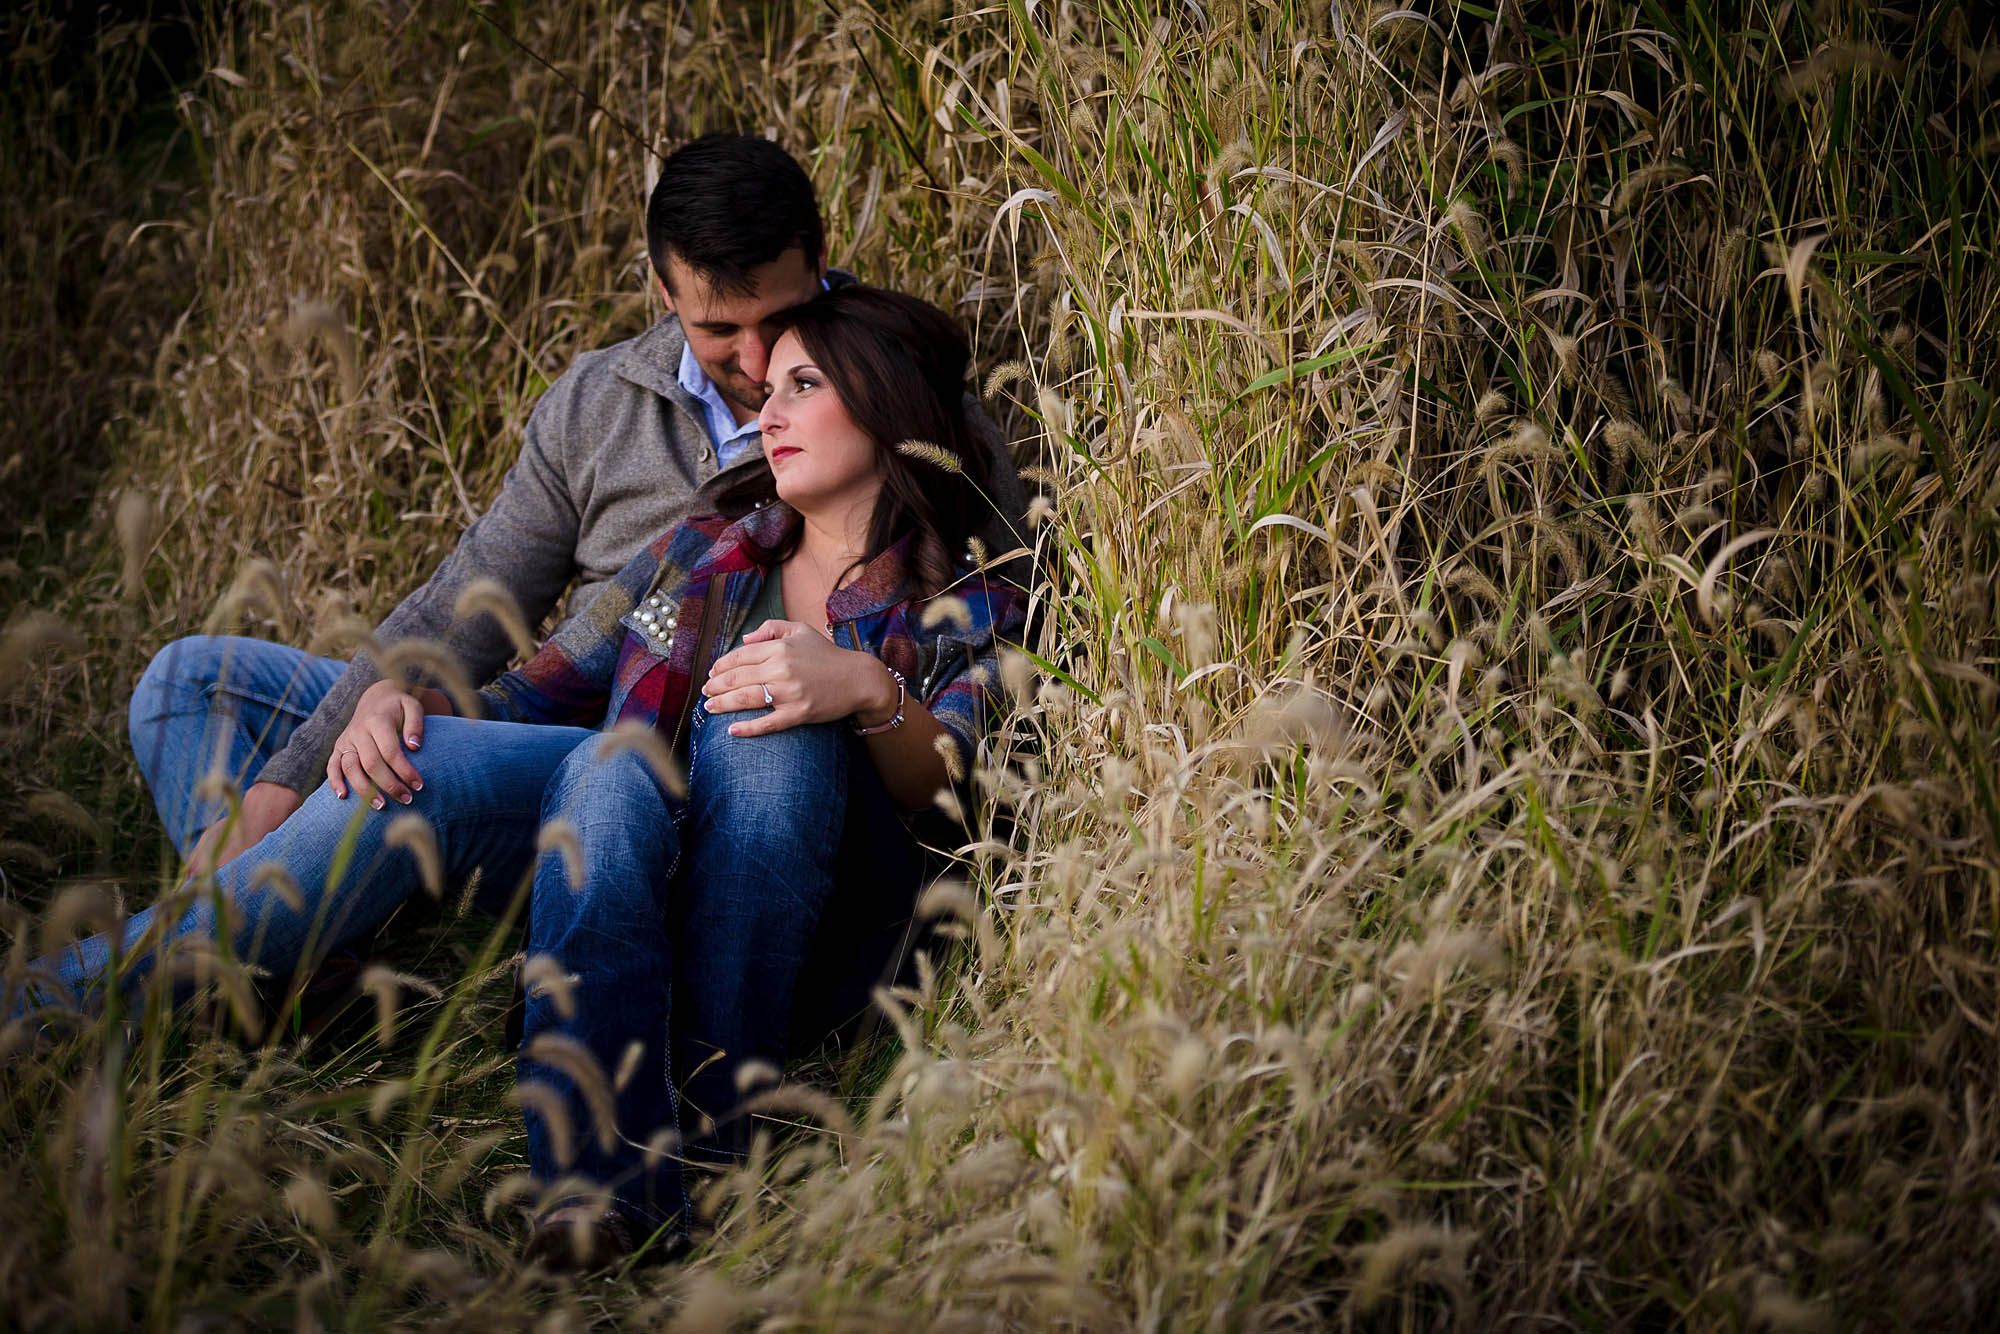 An engaged couple wearing jeans sits back in each other's arms while they lean into tall grassy like weeds during autumn in New Philadelphia, Ohio.